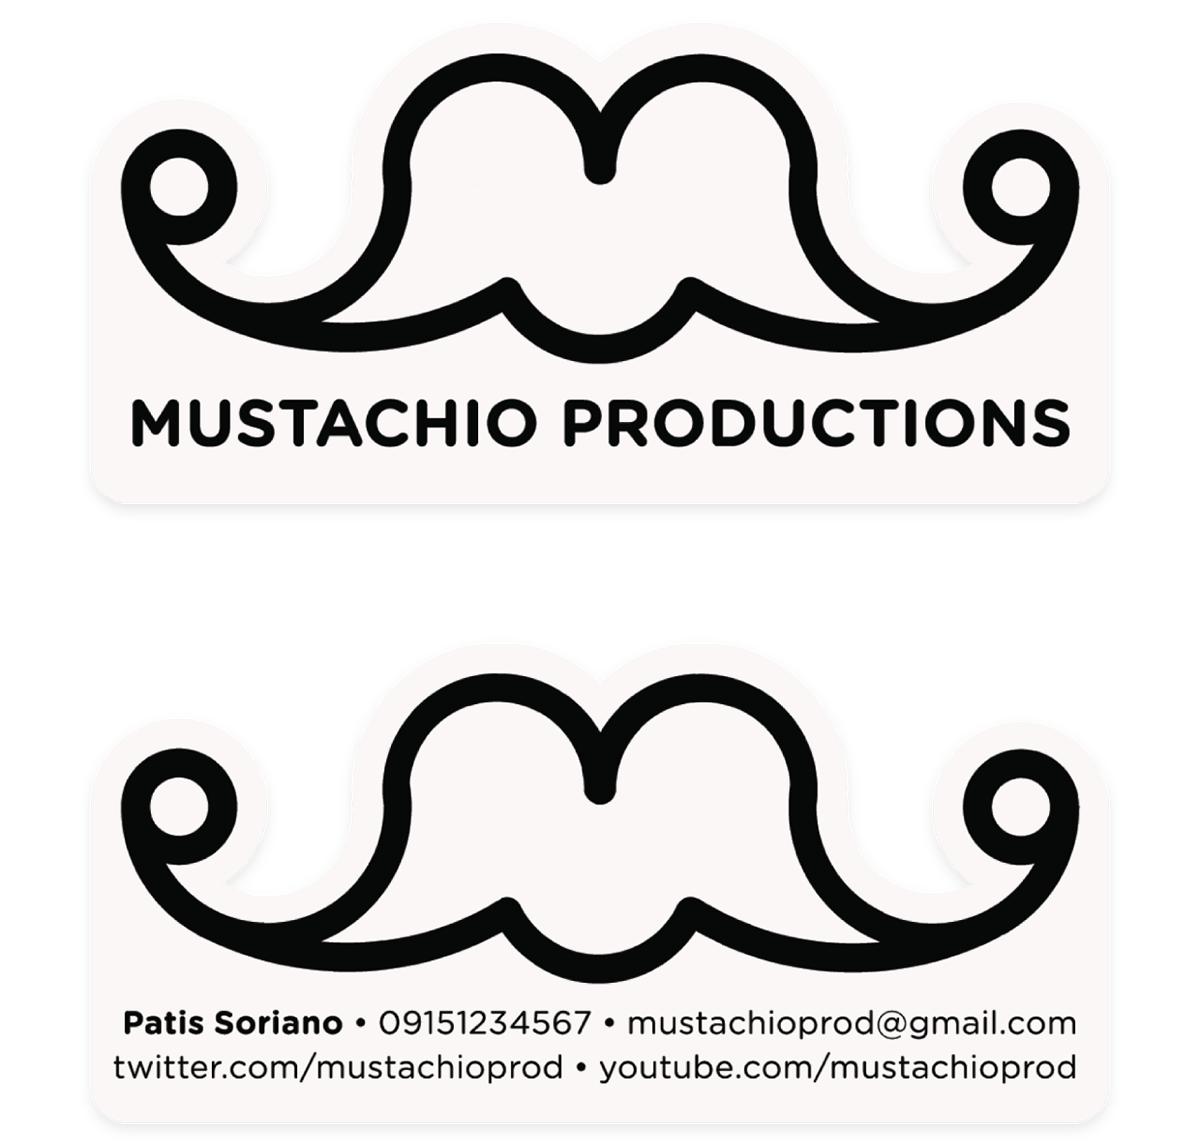 Mustachio Productions on Behance